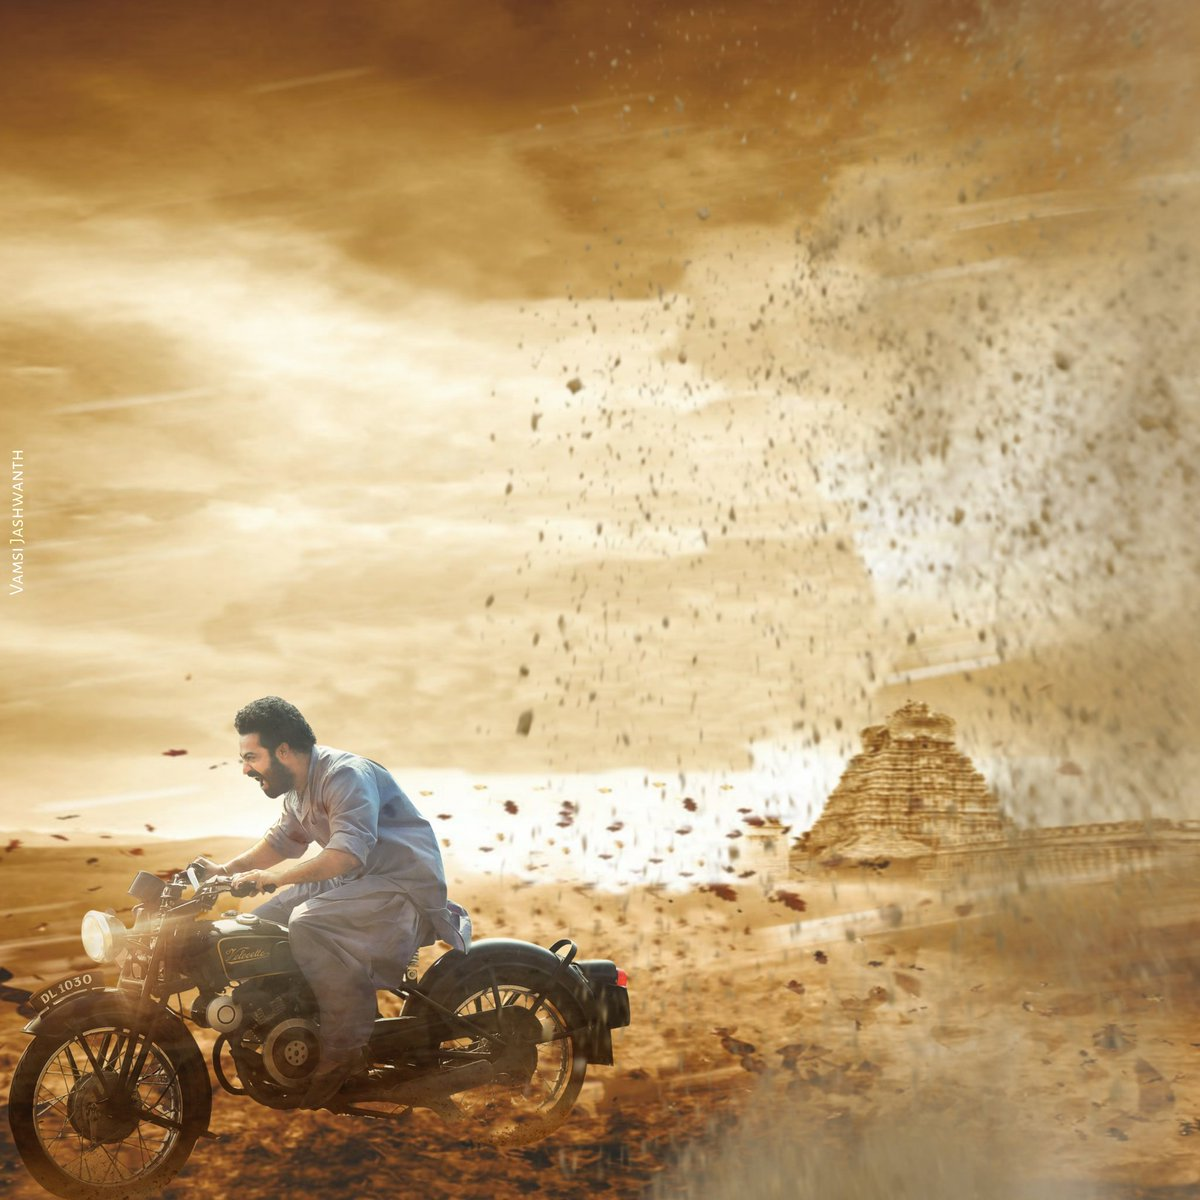 Here we go the special edits of RRR @RRRMovie #RRR #RRRFestivalOnOct13th #RRRFestivalOnOctober13th #KomaramBheemNTR #BheemStormContinues #BheemForRamaraju #RamaRaju #RamaRajuForBheem  #SeethaRAMaRajuCHARAN @EditorChoice_ @TEAMDESIGNERS2